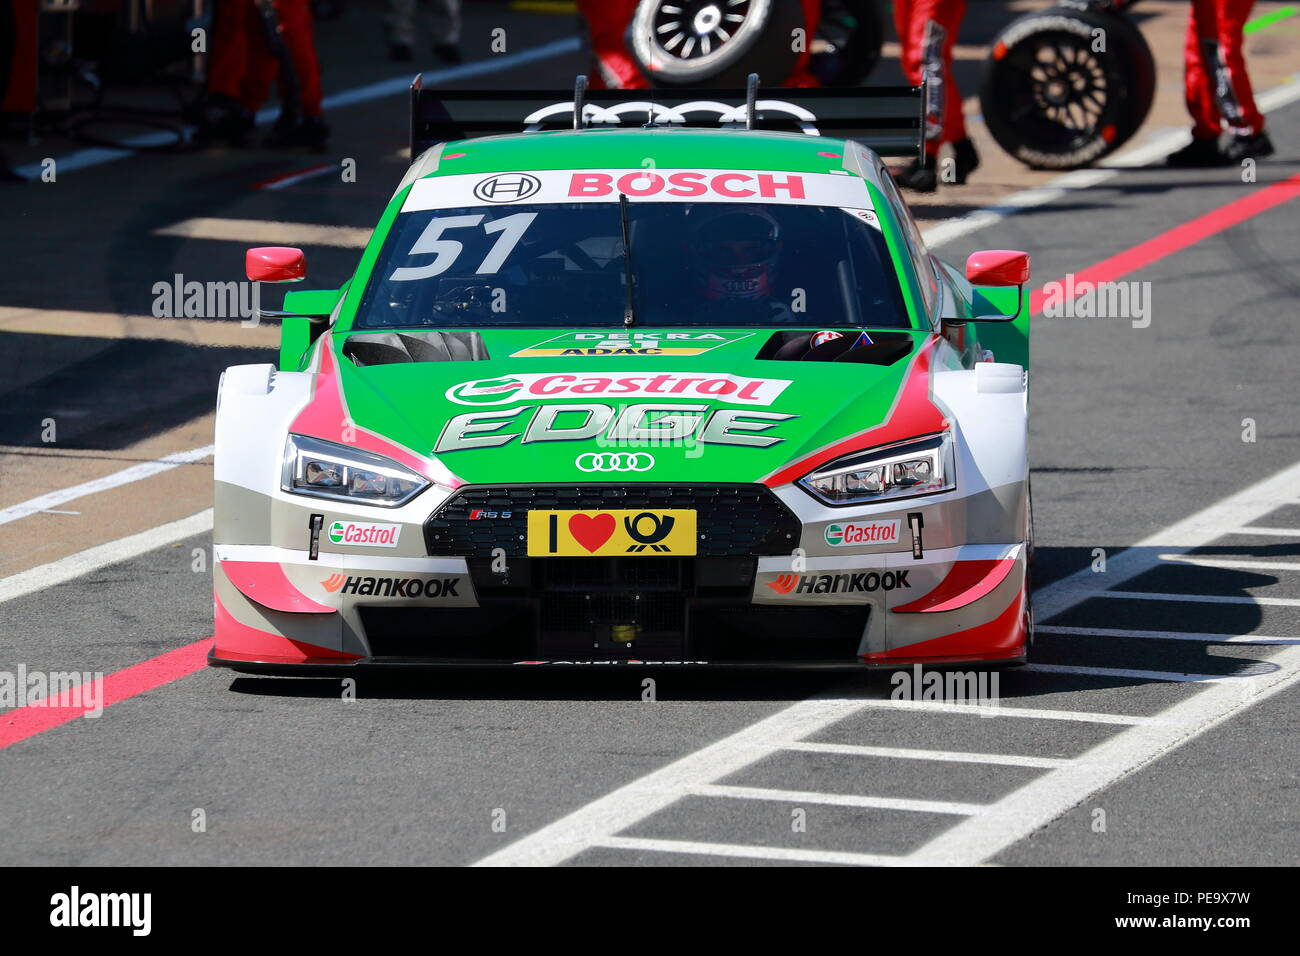 Nico Mueller in his Audi at the DTM Race 2018 at Brands Hatch Circuit, UK - Stock Image